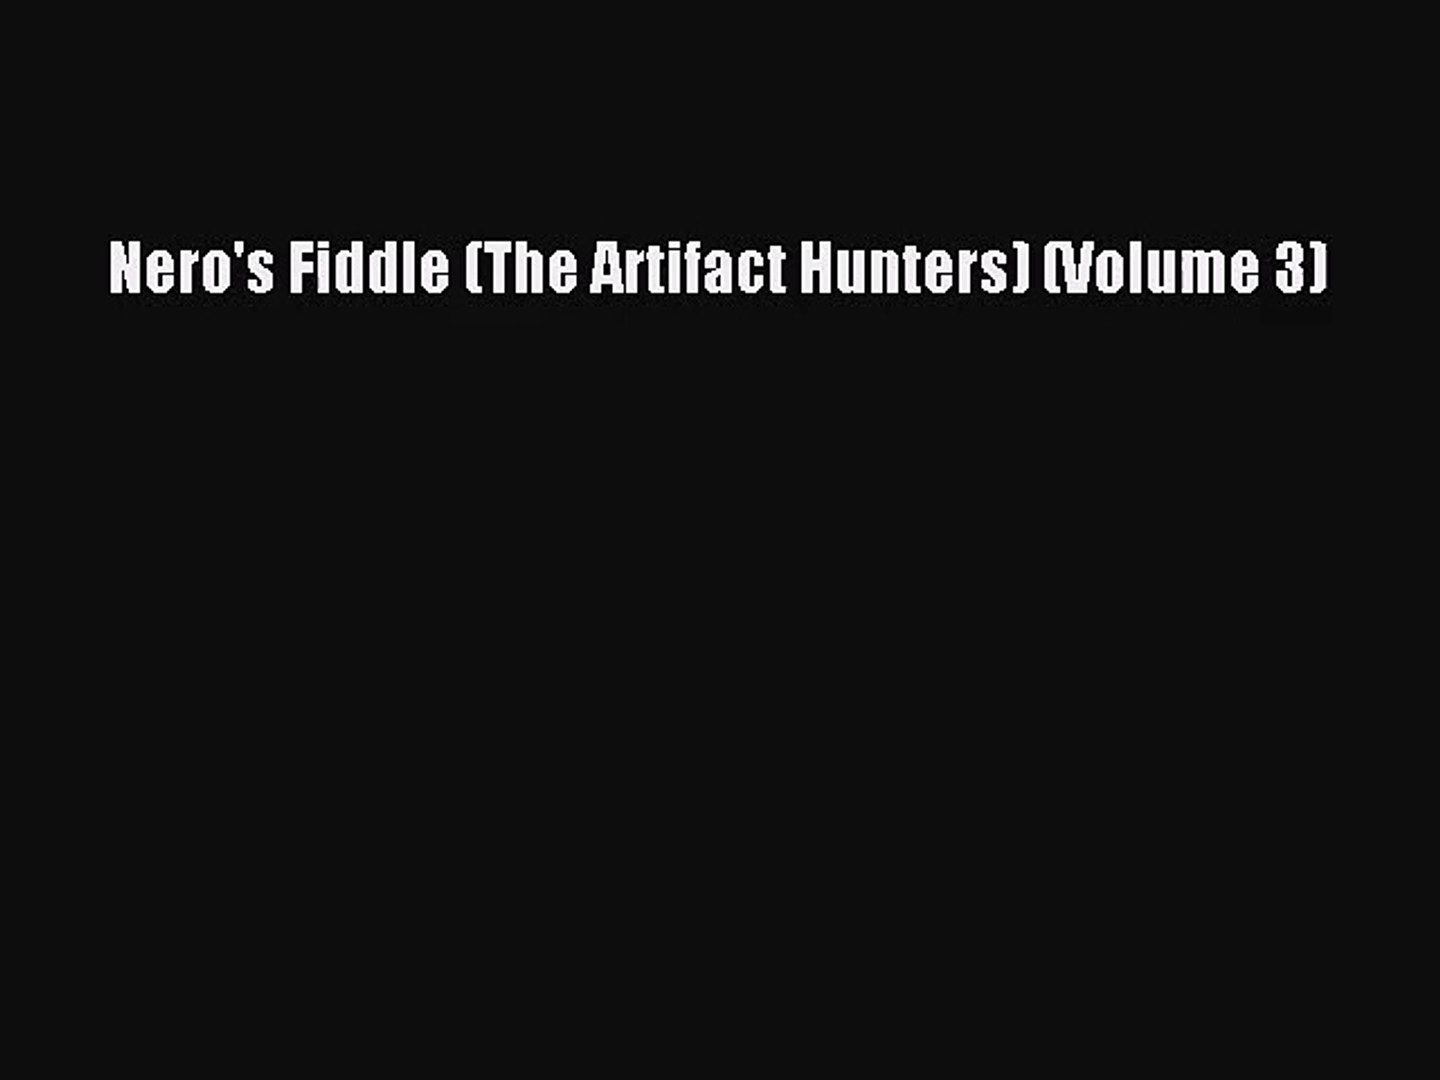 Nero's Fiddle (The Artifact Hunters) (Volume 3) [Download] Online